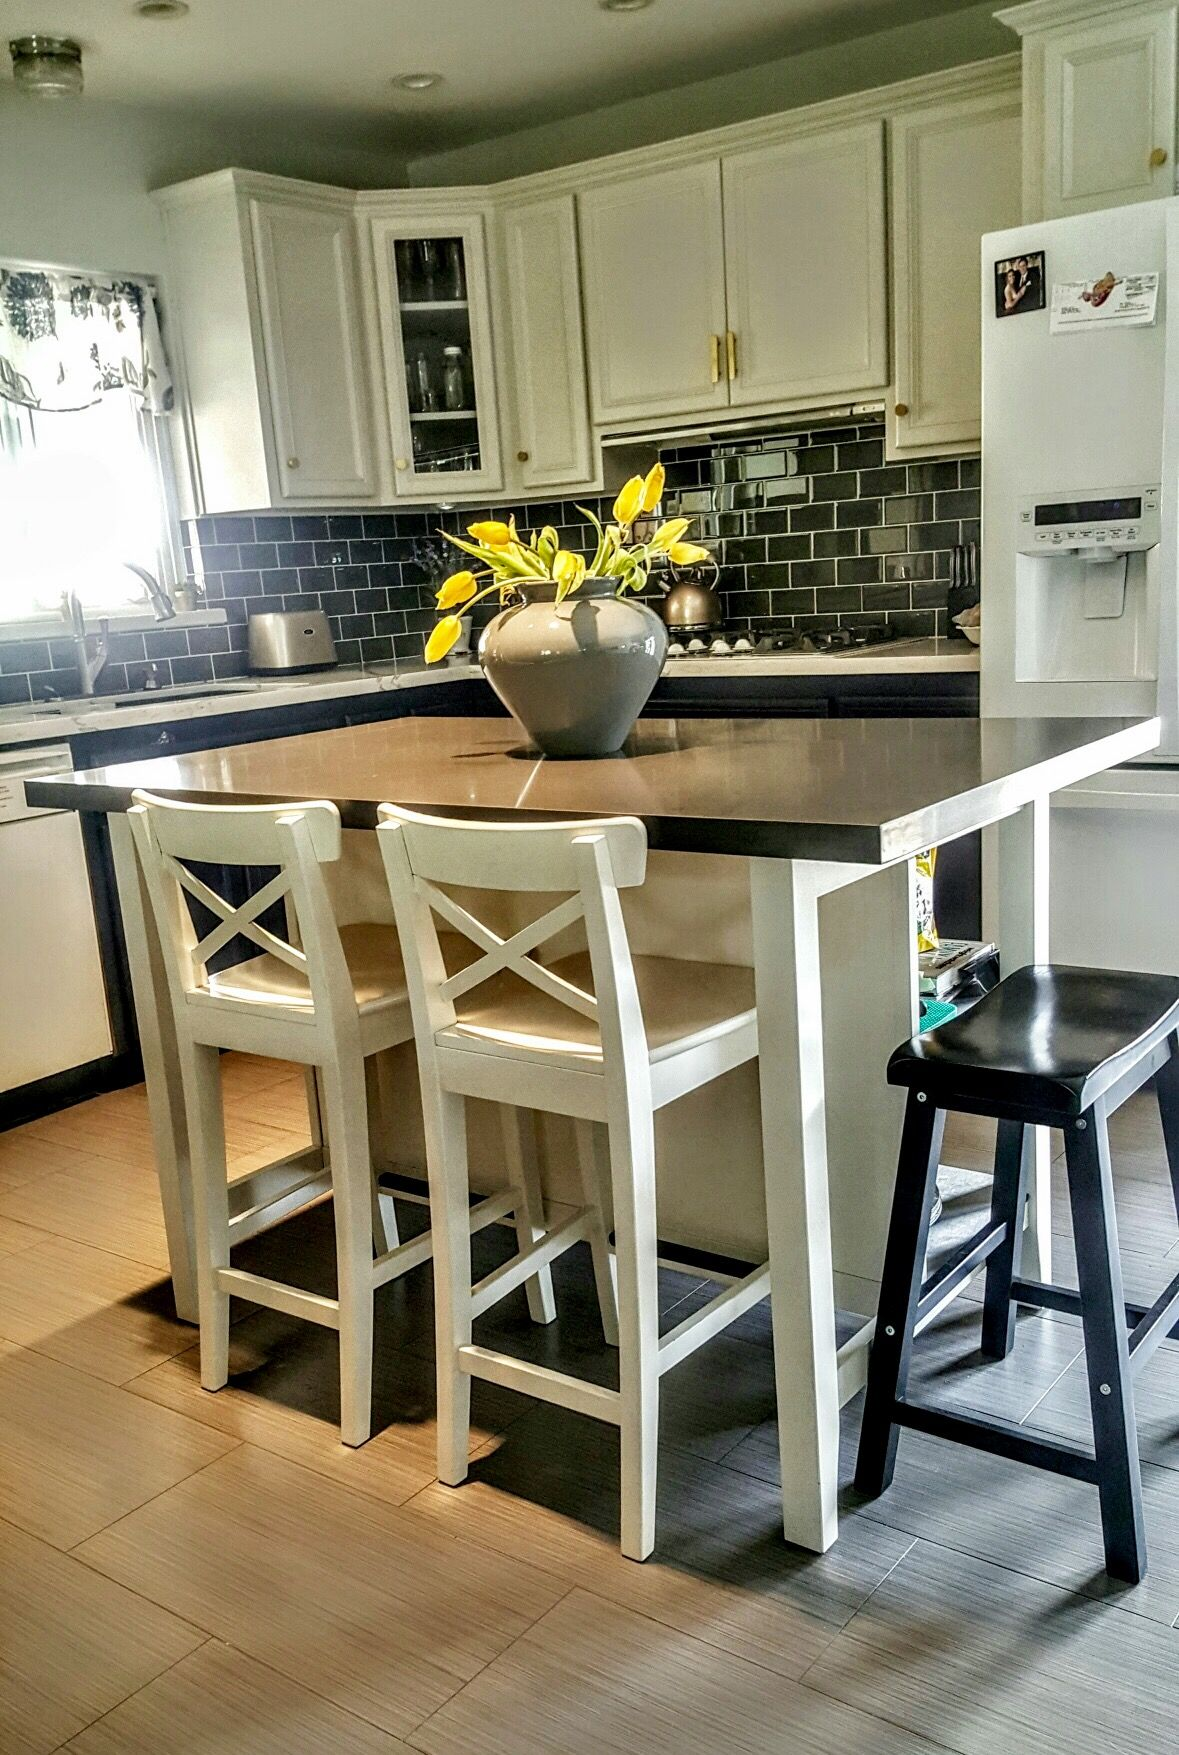 Ikea Küchen Stenstorp Ikea Stenstorp Kitchen Island Hack We Added Grey Quartz